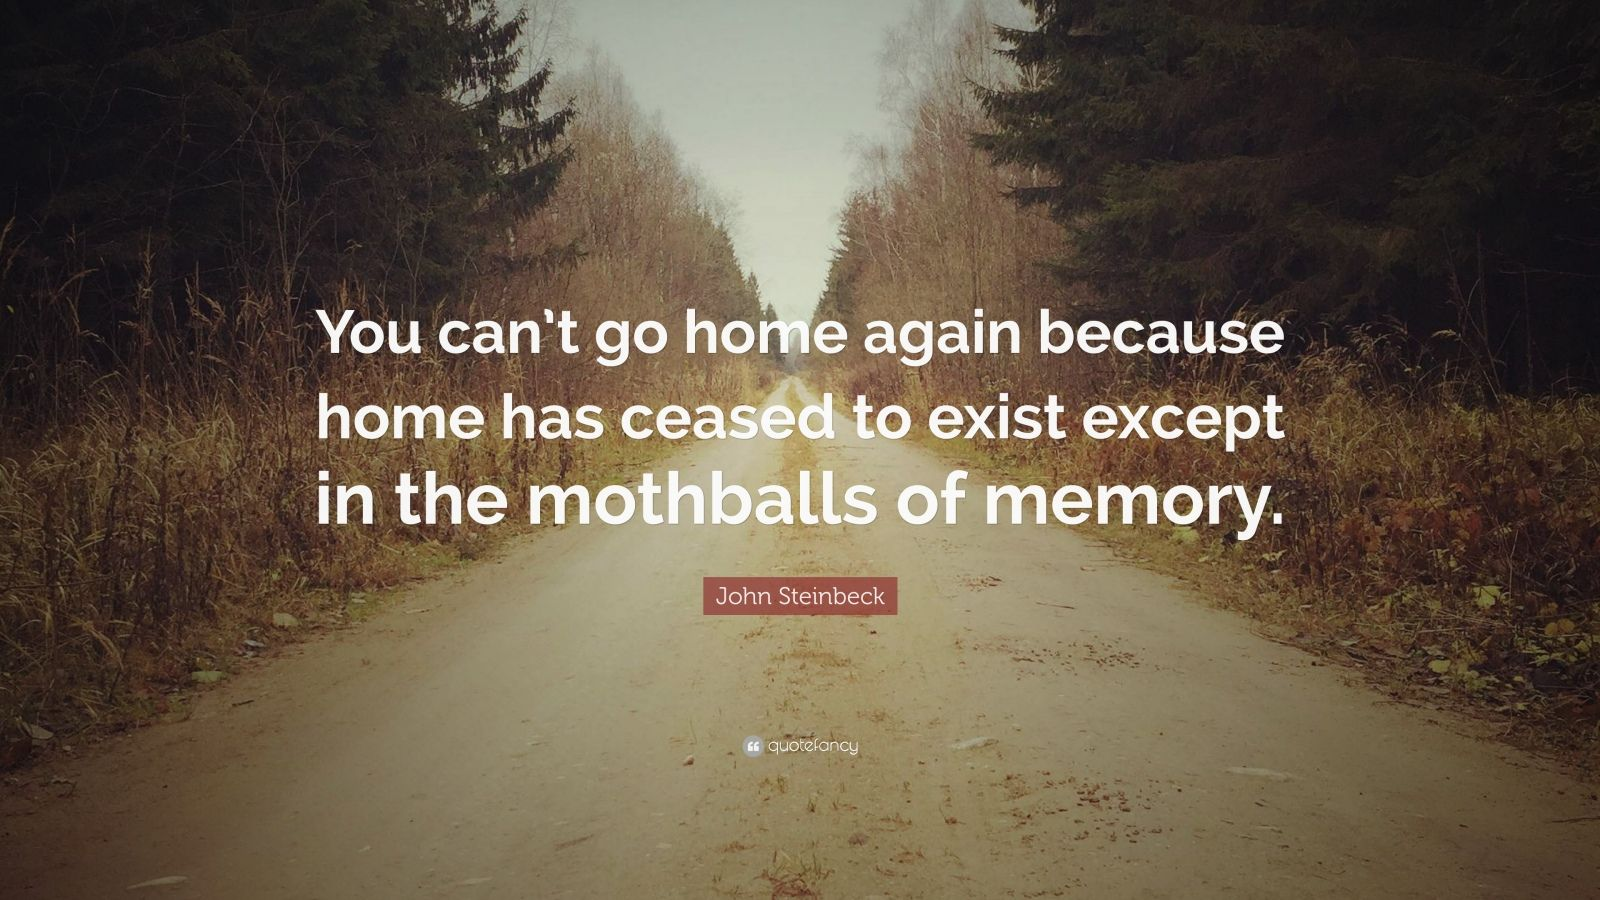 """John Steinbeck Quote: """"You can't go home again because home has ceased to exist except in the mothballs of memory."""""""